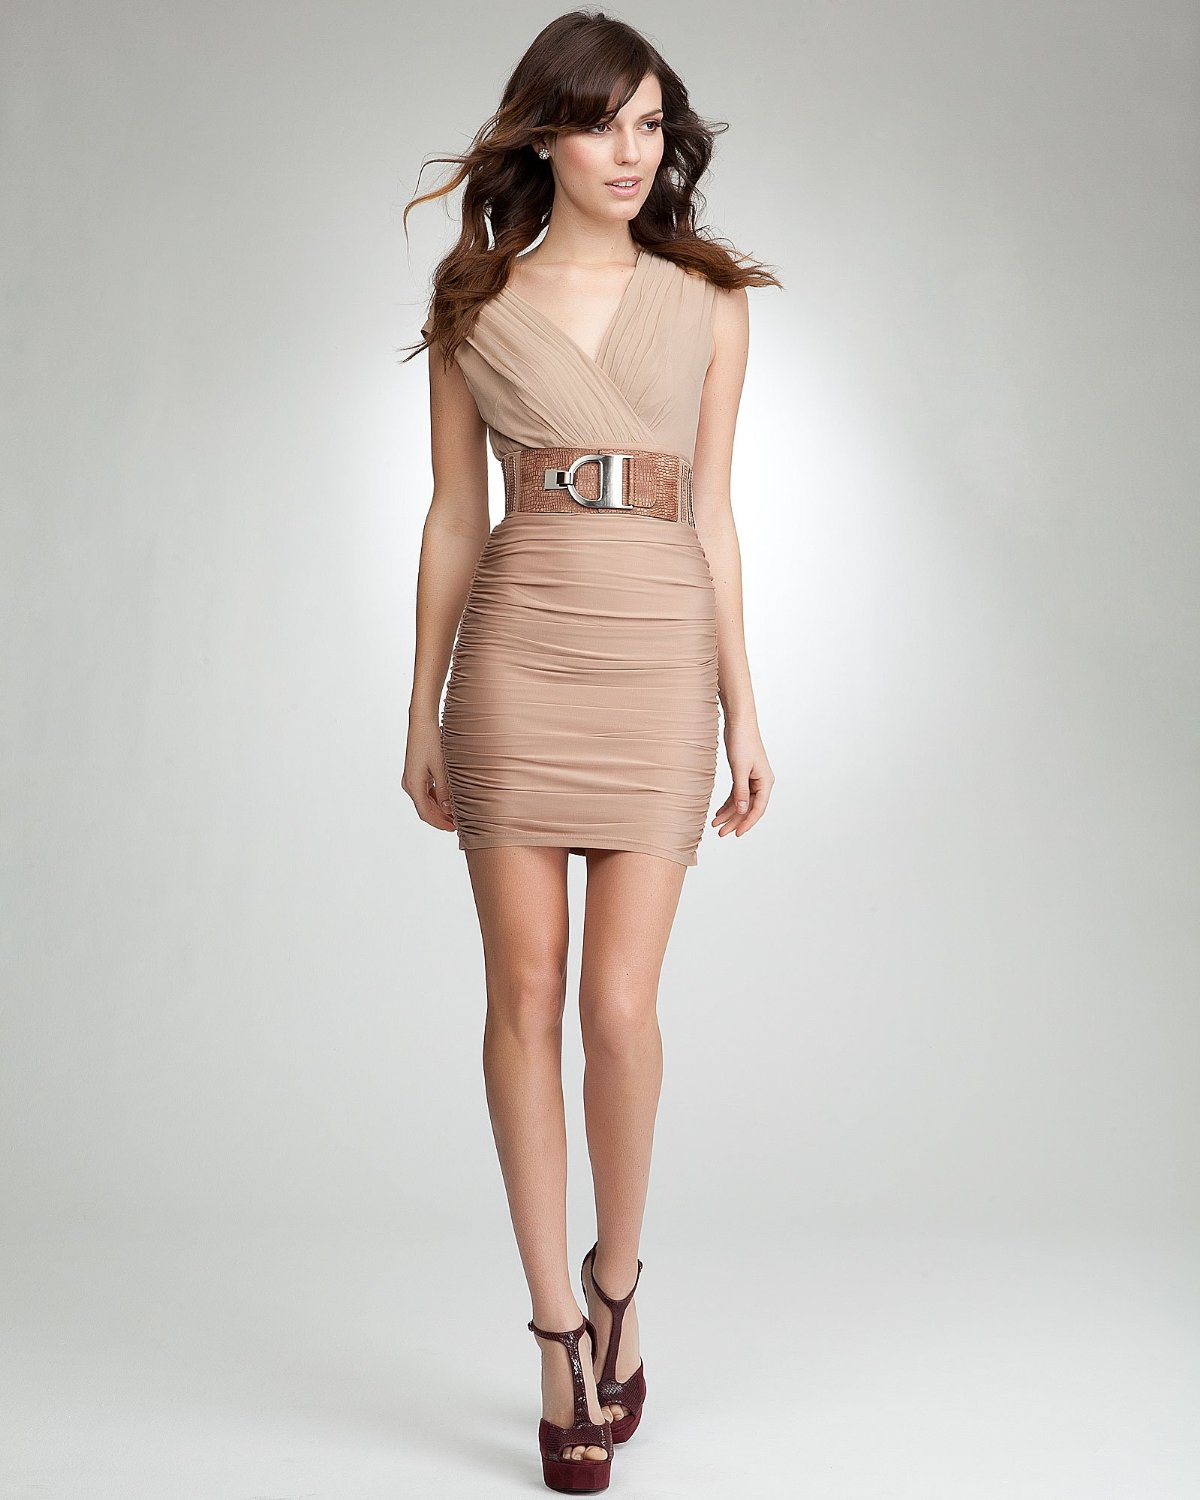 Nature Dress: Dress4Cutelady: Natural Color Dress With Chocolate Brown